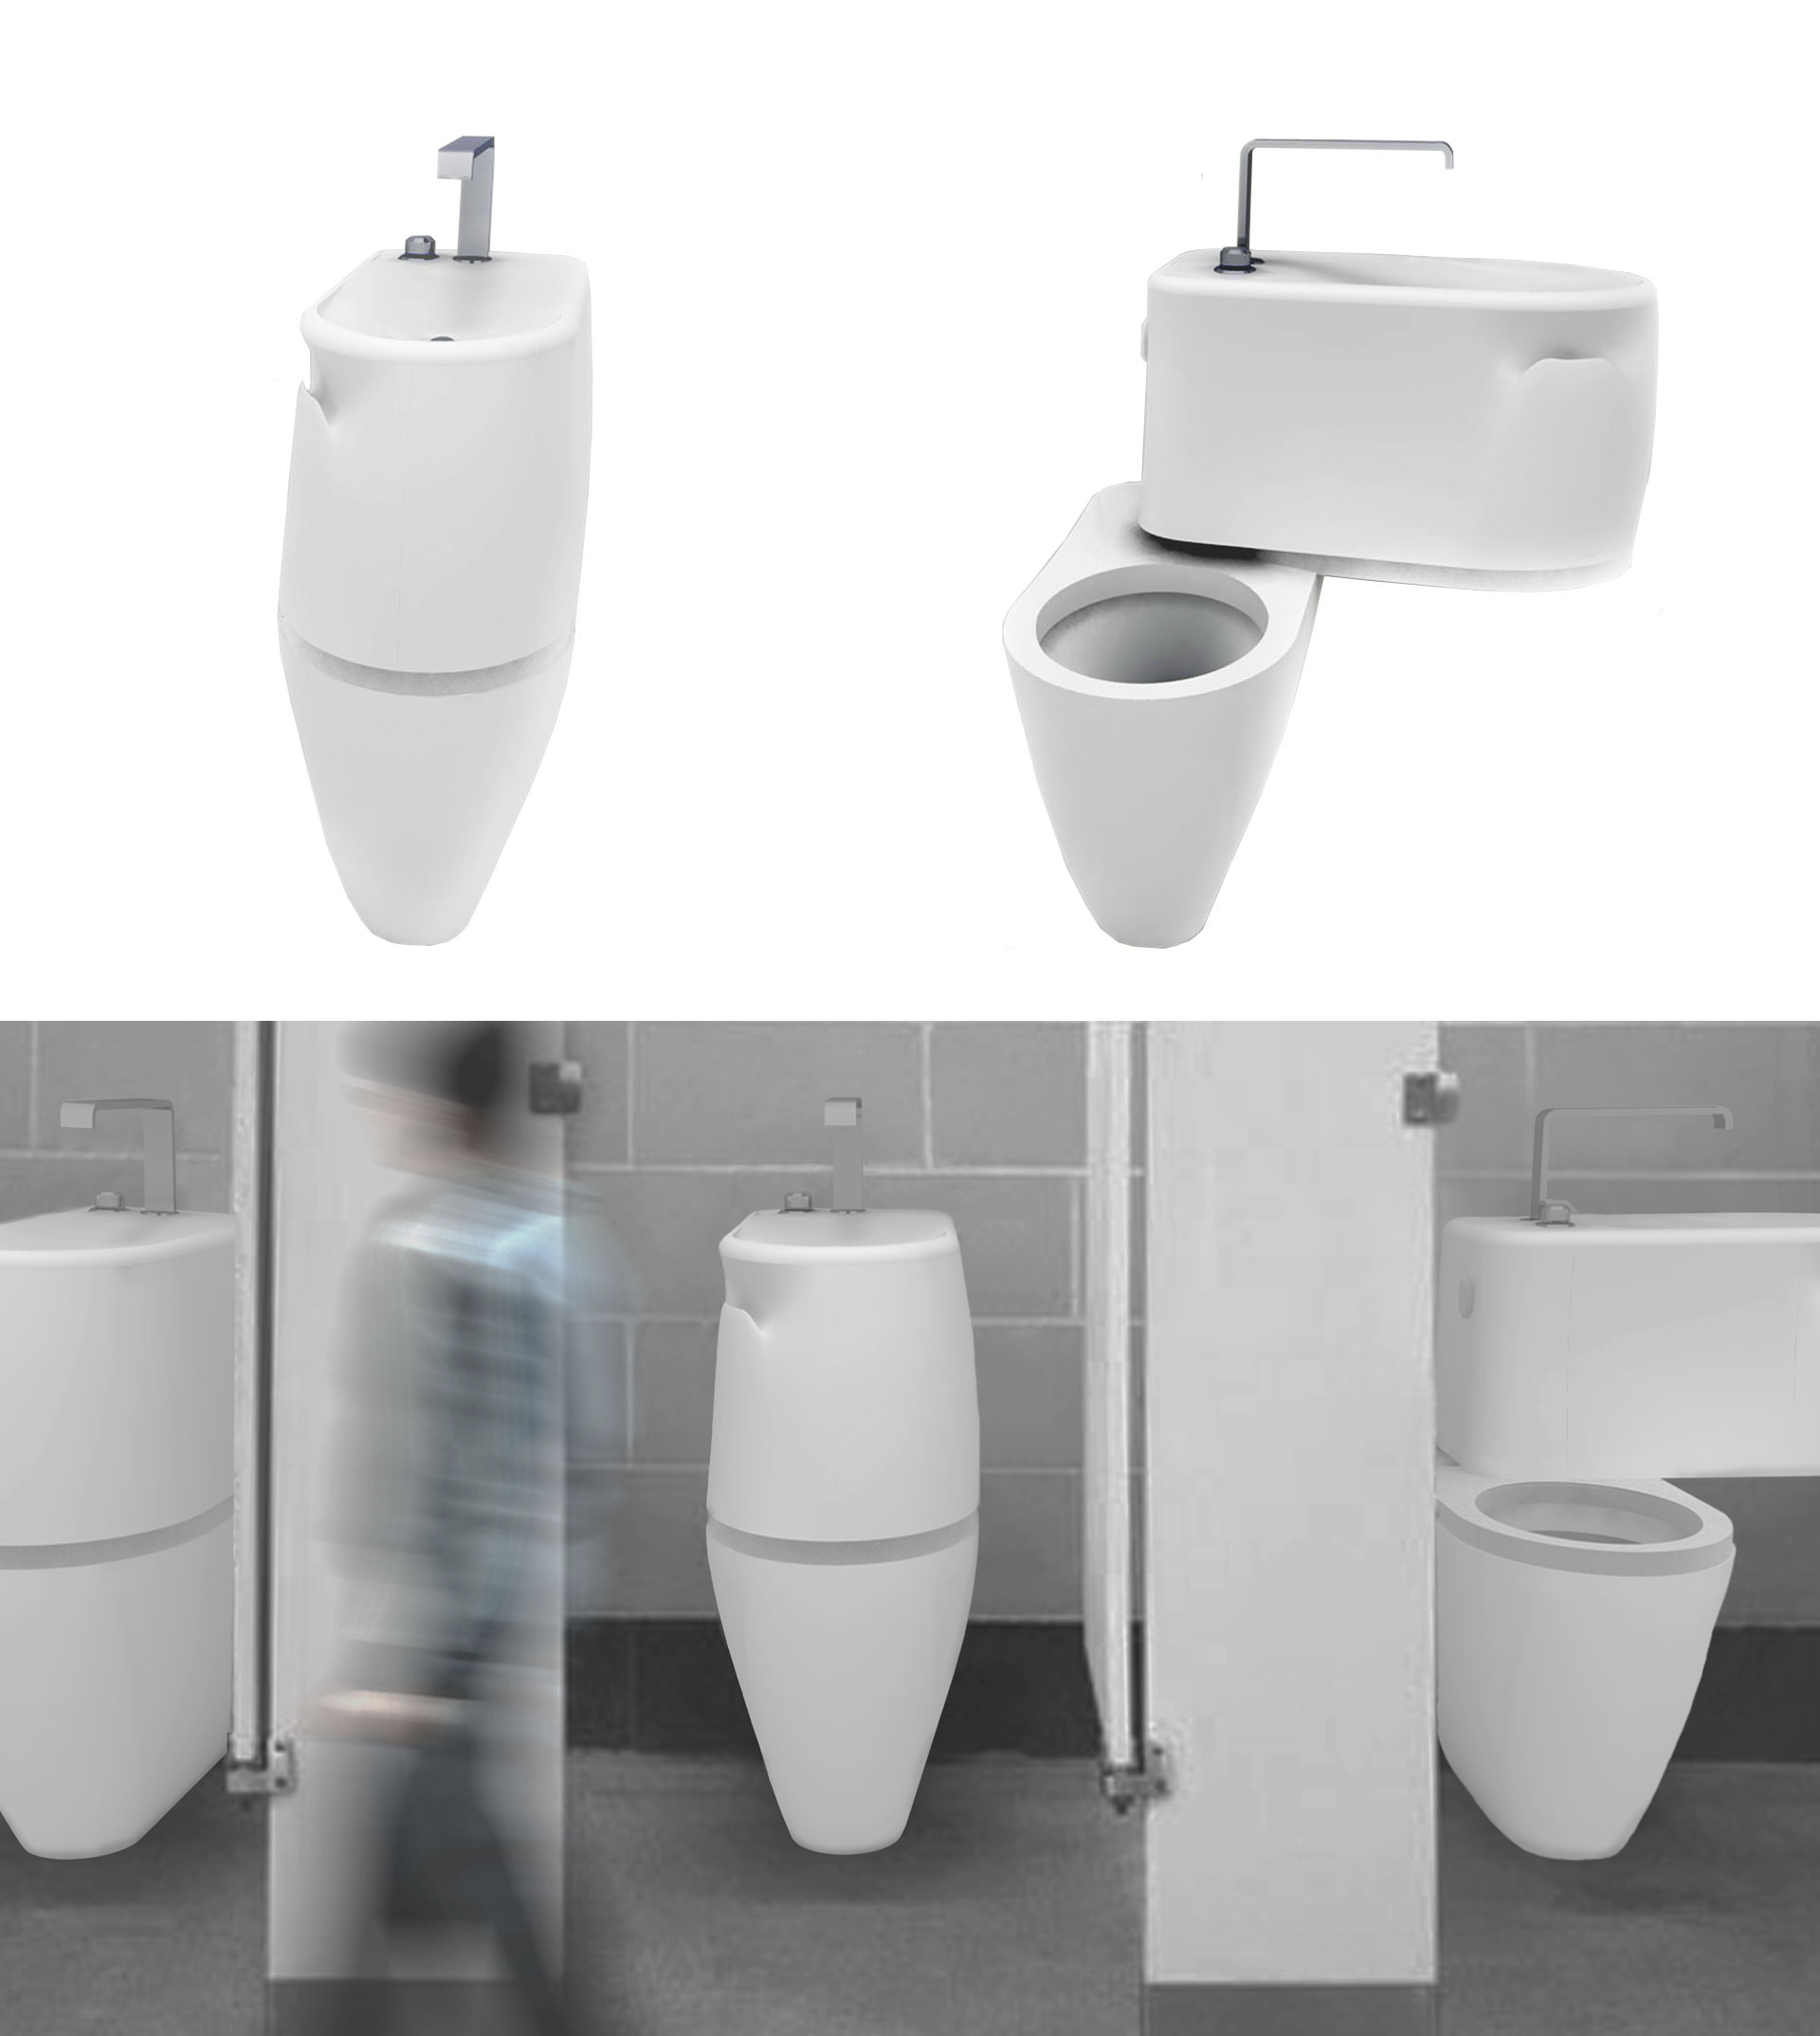 Space and energy saving toilet concept livinghouse blog - Small toilets for tight spaces concept ...